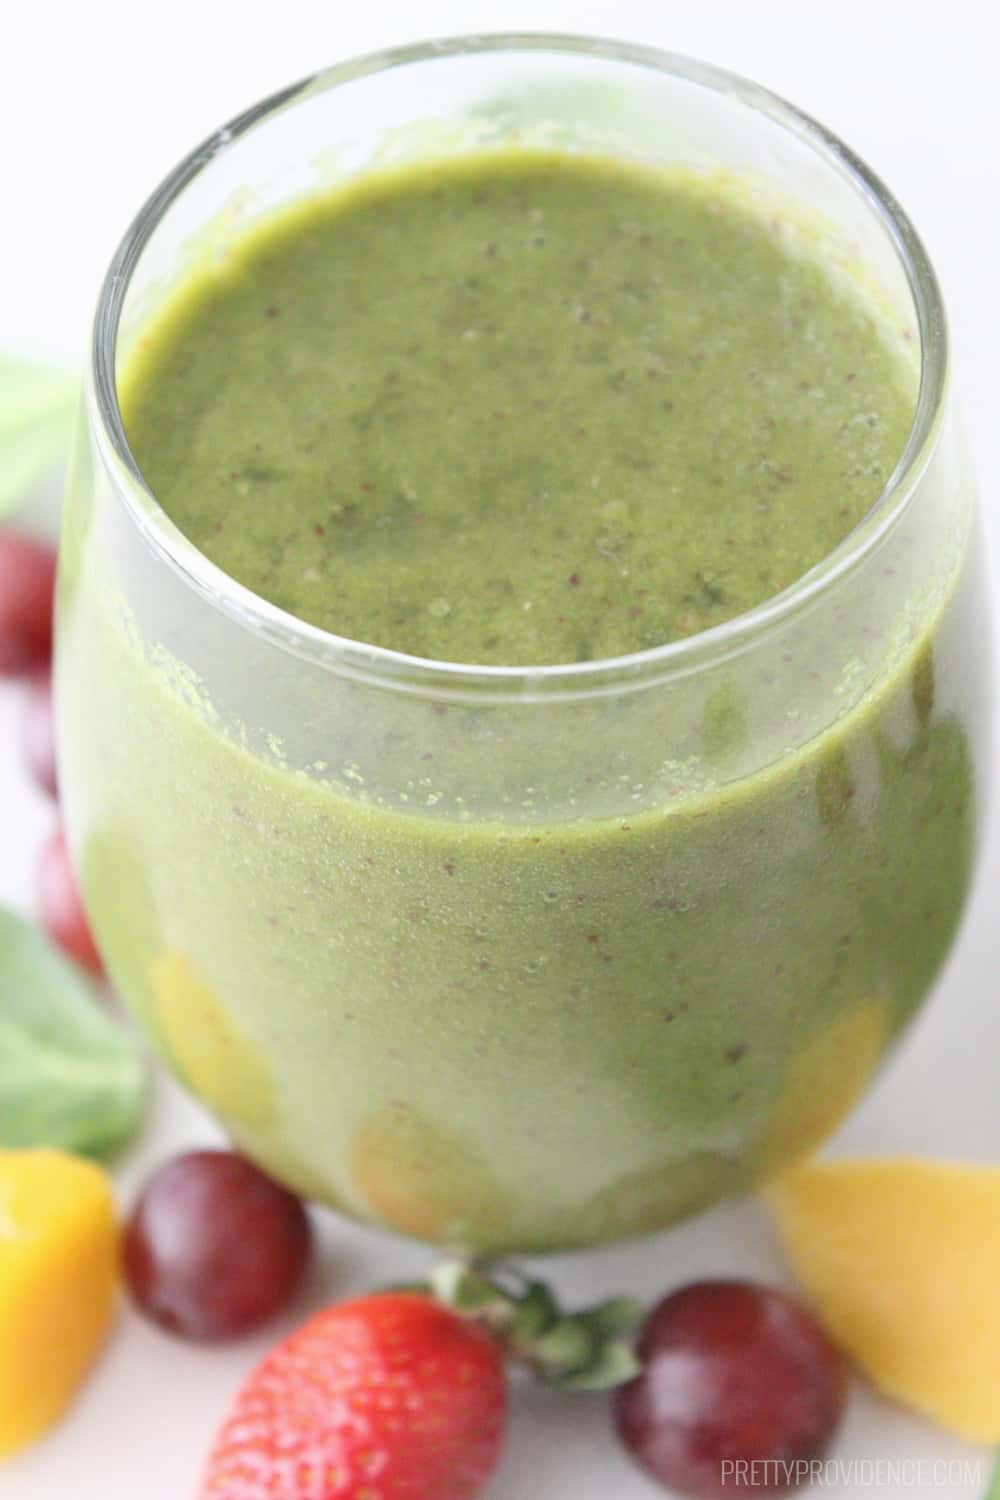 Green Smoothie in a clear glass surrounded by fresh fruit and spinach.